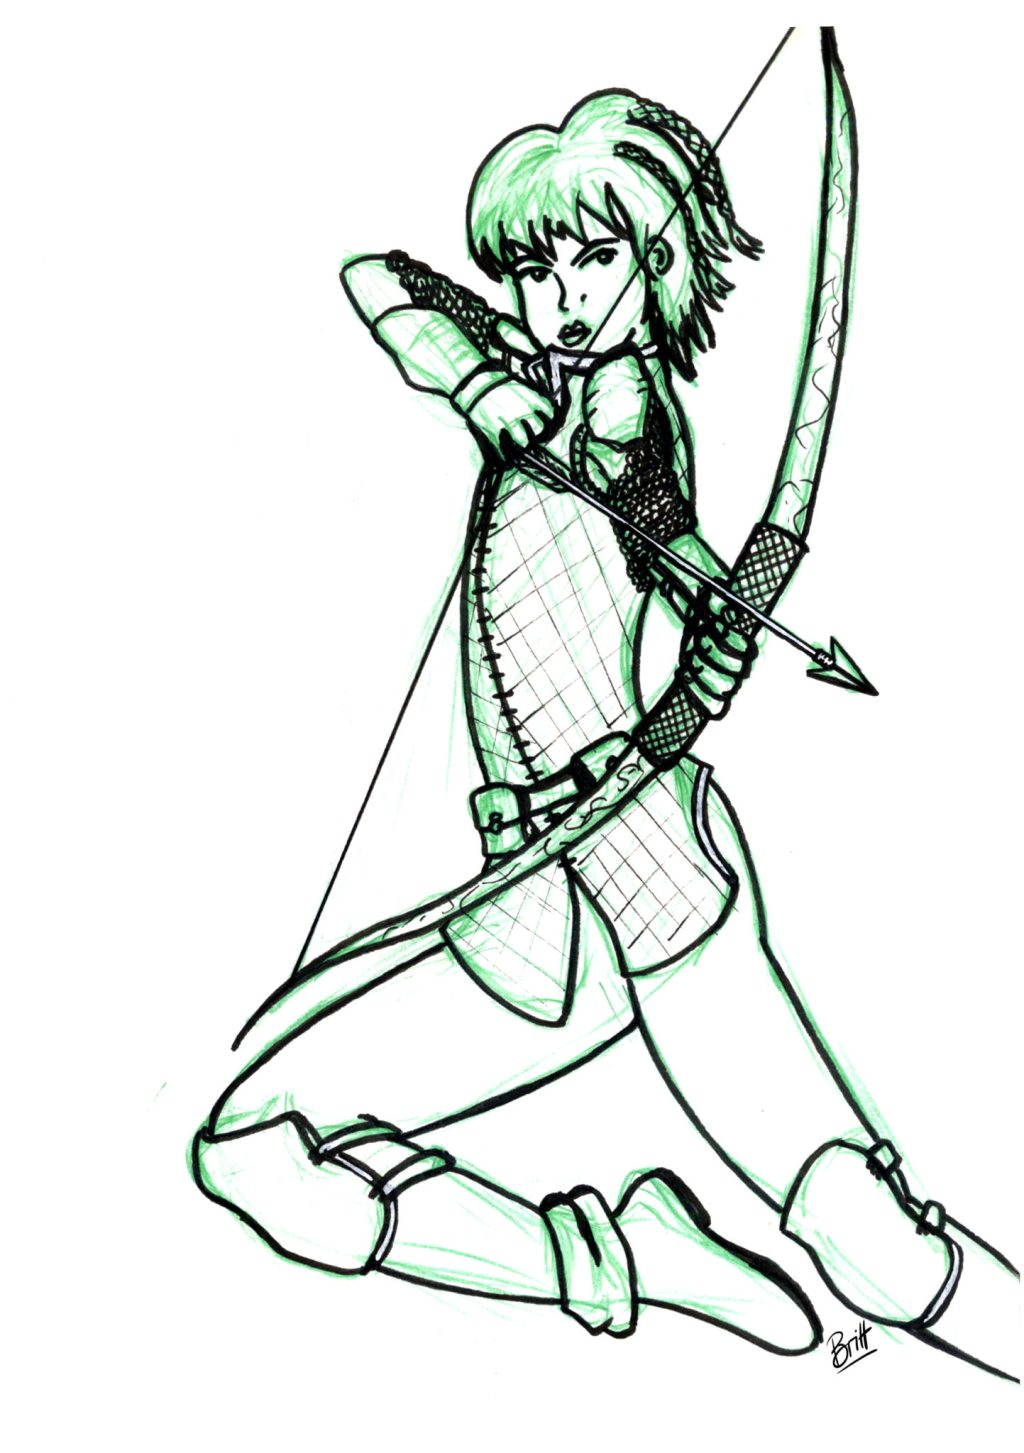 Berna, one of my D&D characters, a ranger shooting her bow and arrow.